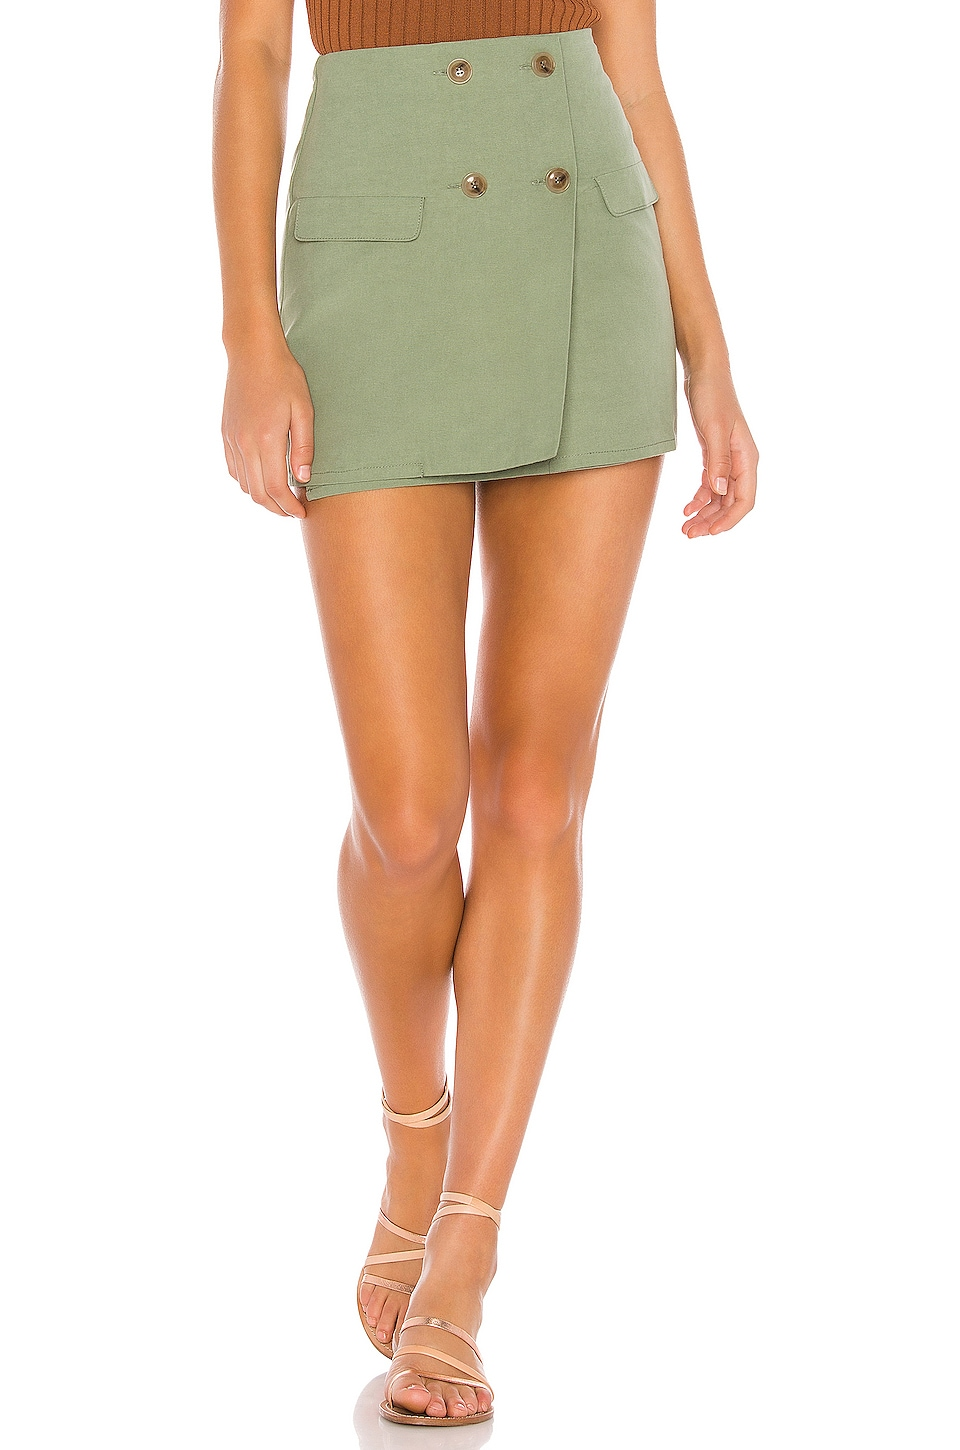 Tularosa Brandy Skirt in Sage